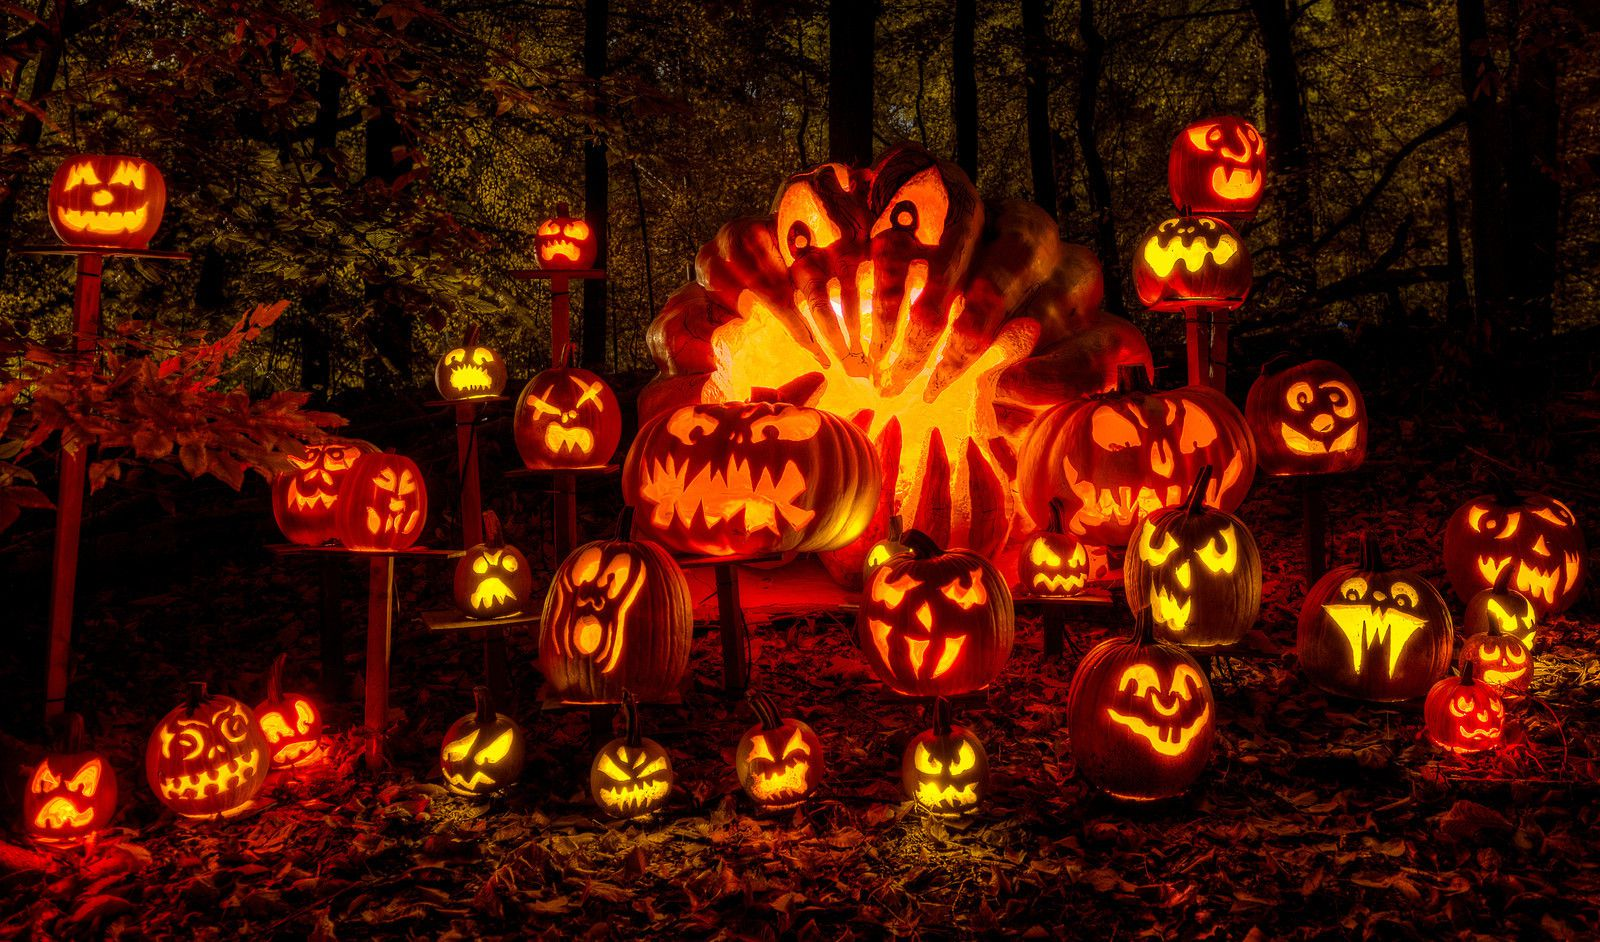 Pumpkin Carving Made Easy | Pumpkin Carving Ideas and Accessories | Free Stencils!